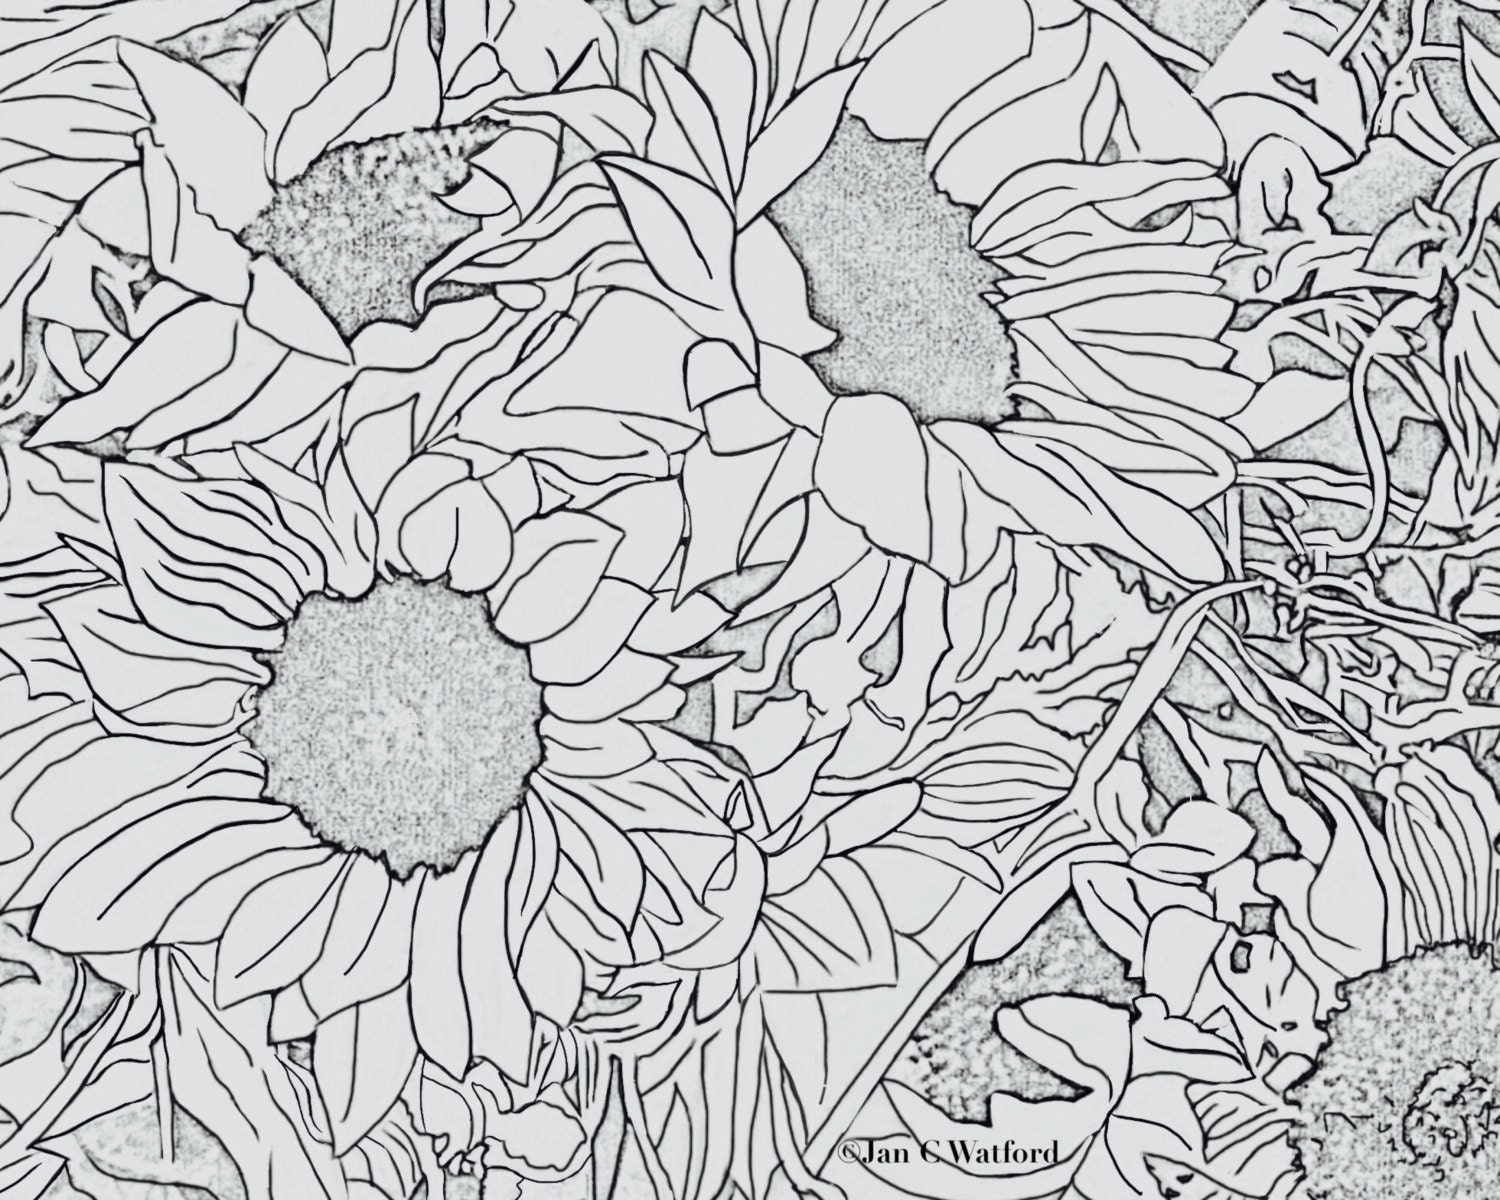 sunflowers 1 adult coloring pages coloring page printable rose coloring pages for adults sunflowers adult coloring pages with birds